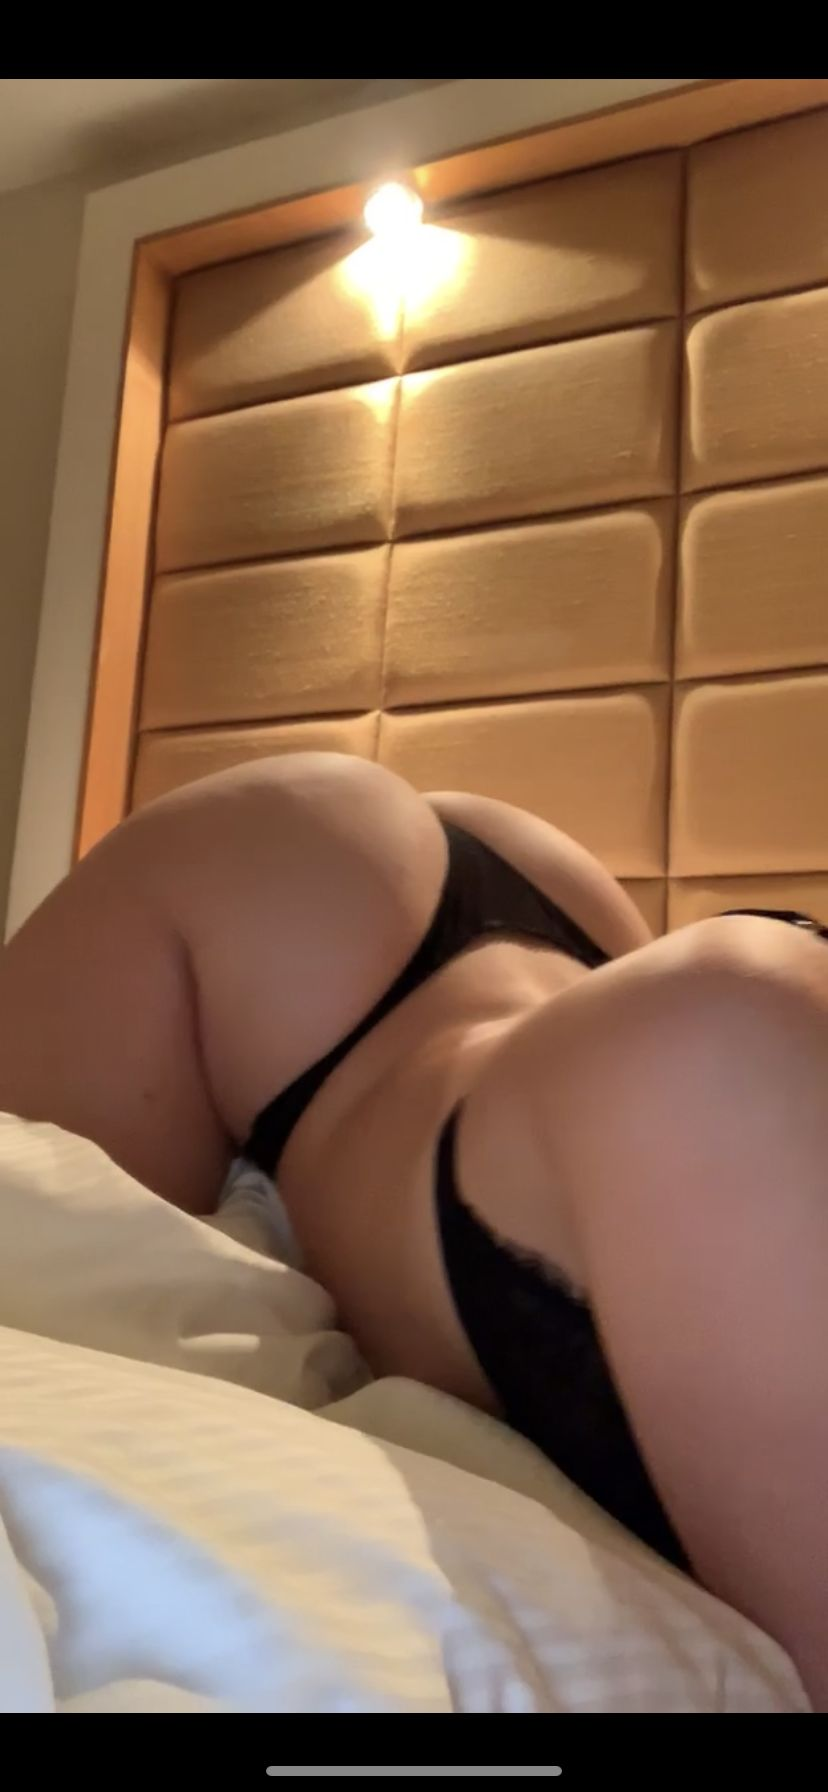 Amber Mae onlyfans leaked onlyfans leaked